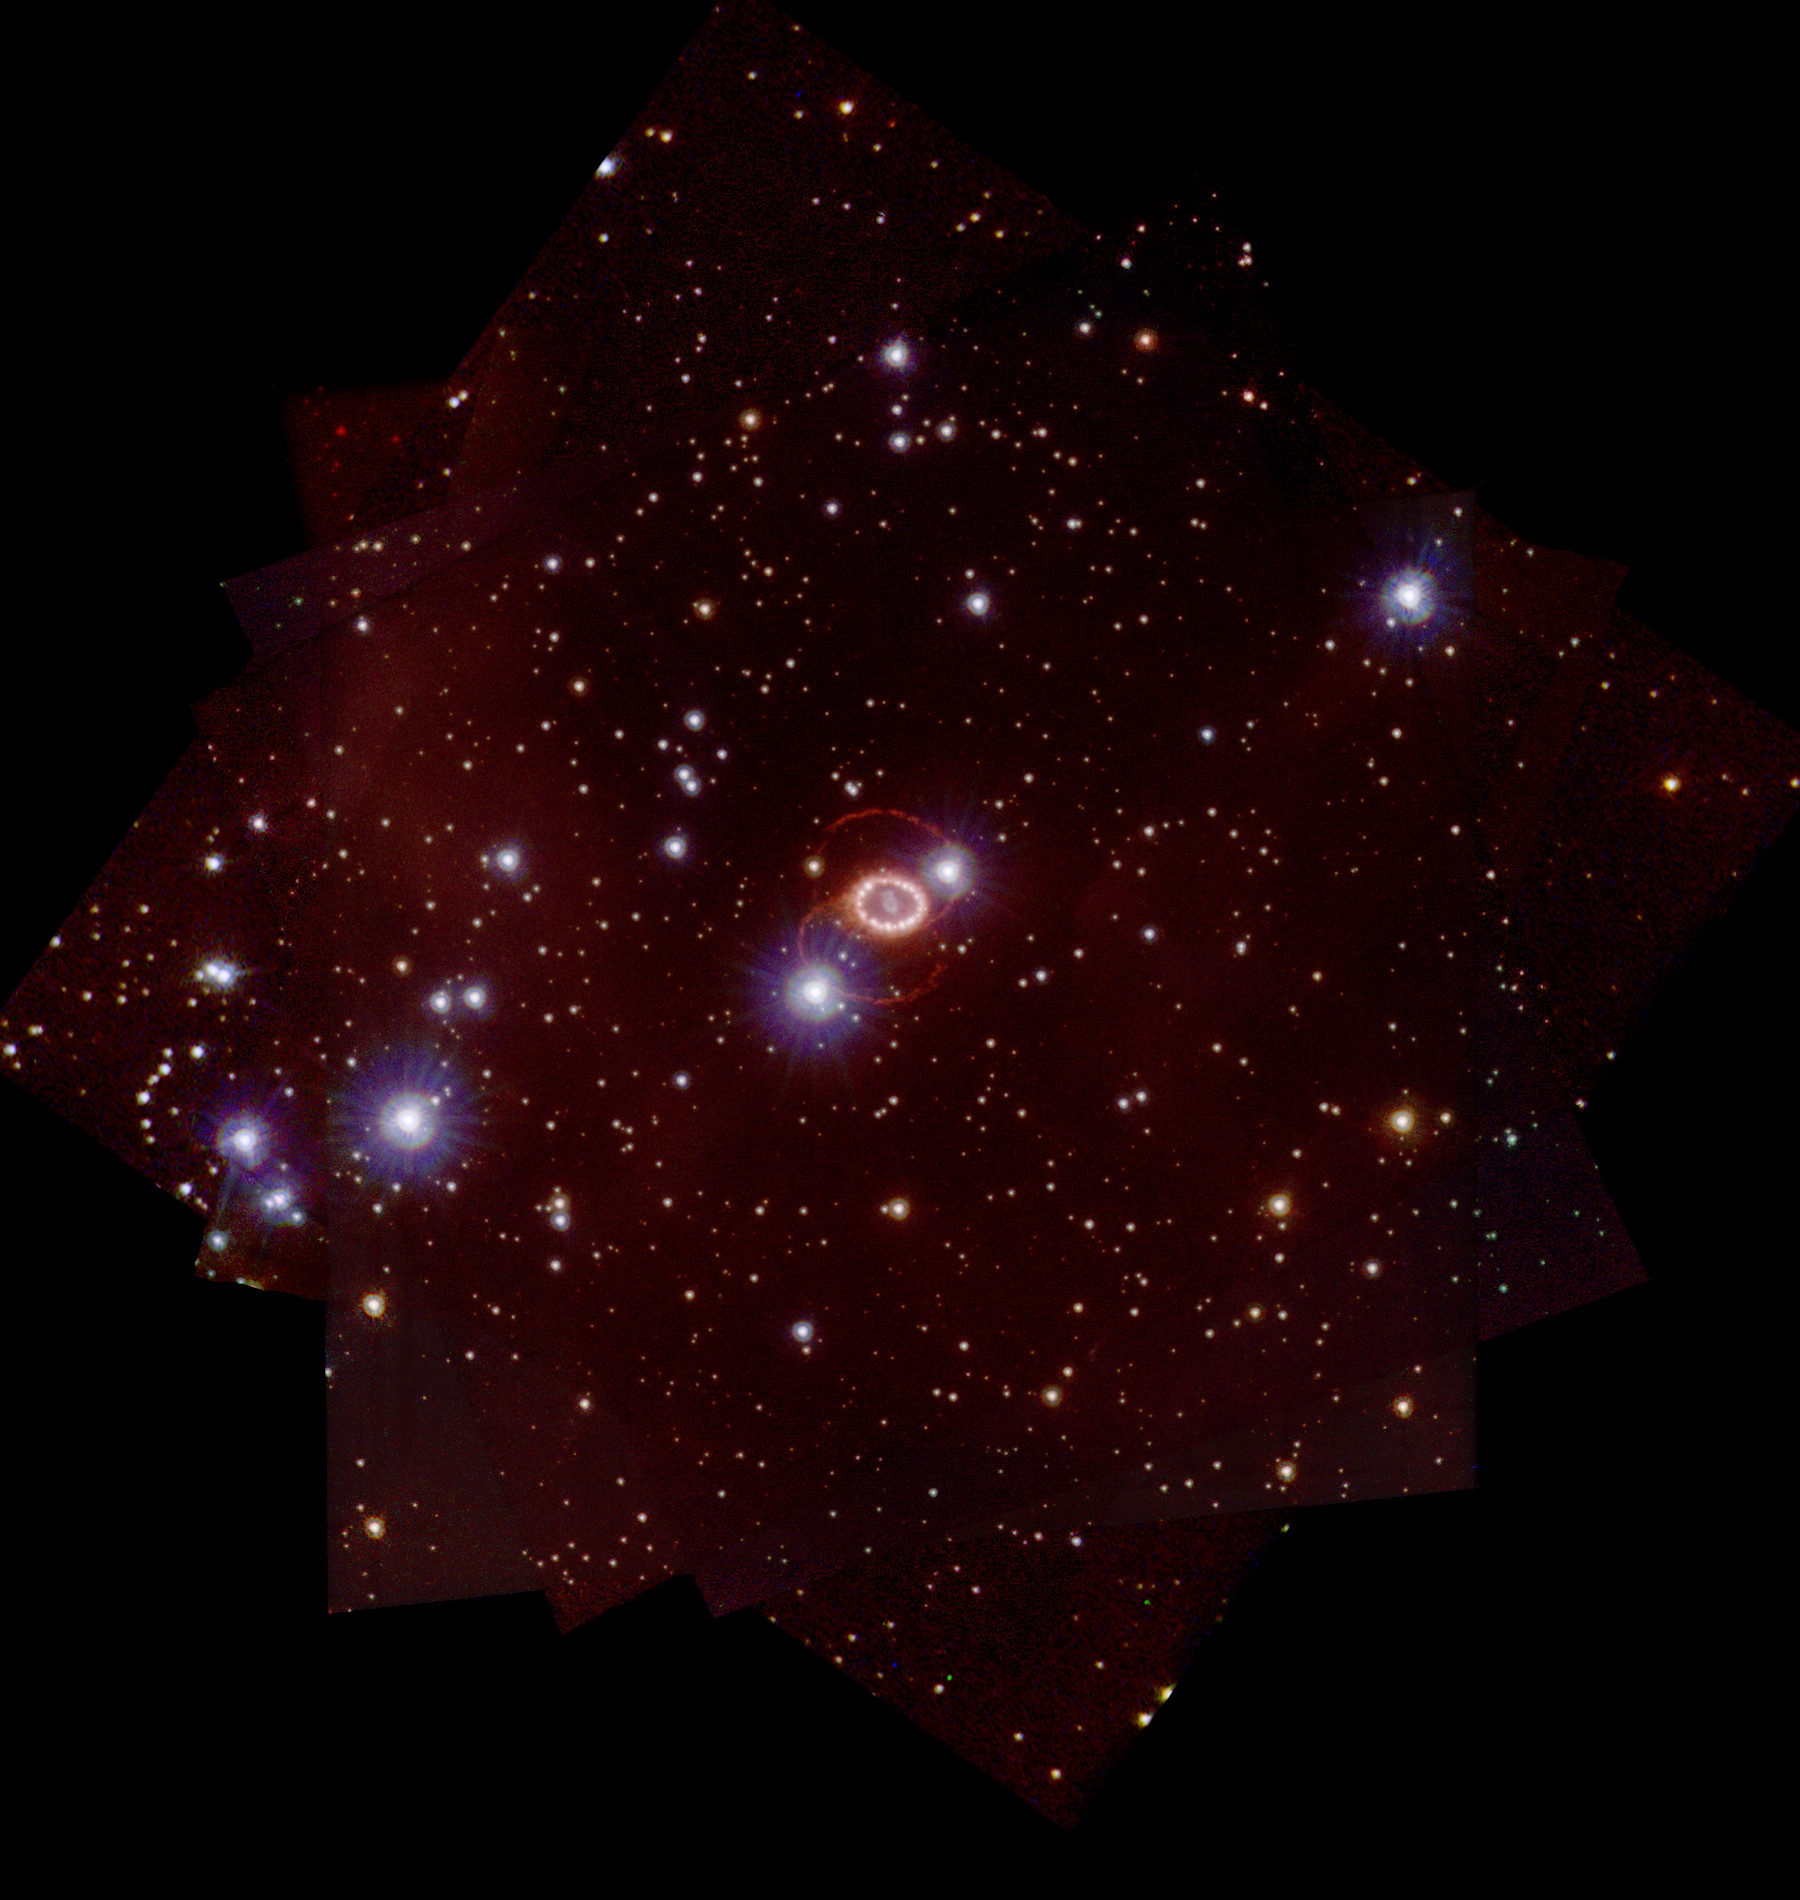 APOD: Shocked by Supernova 1987A (2012 Feb 27) - Page 2 - Starship Asterisk*